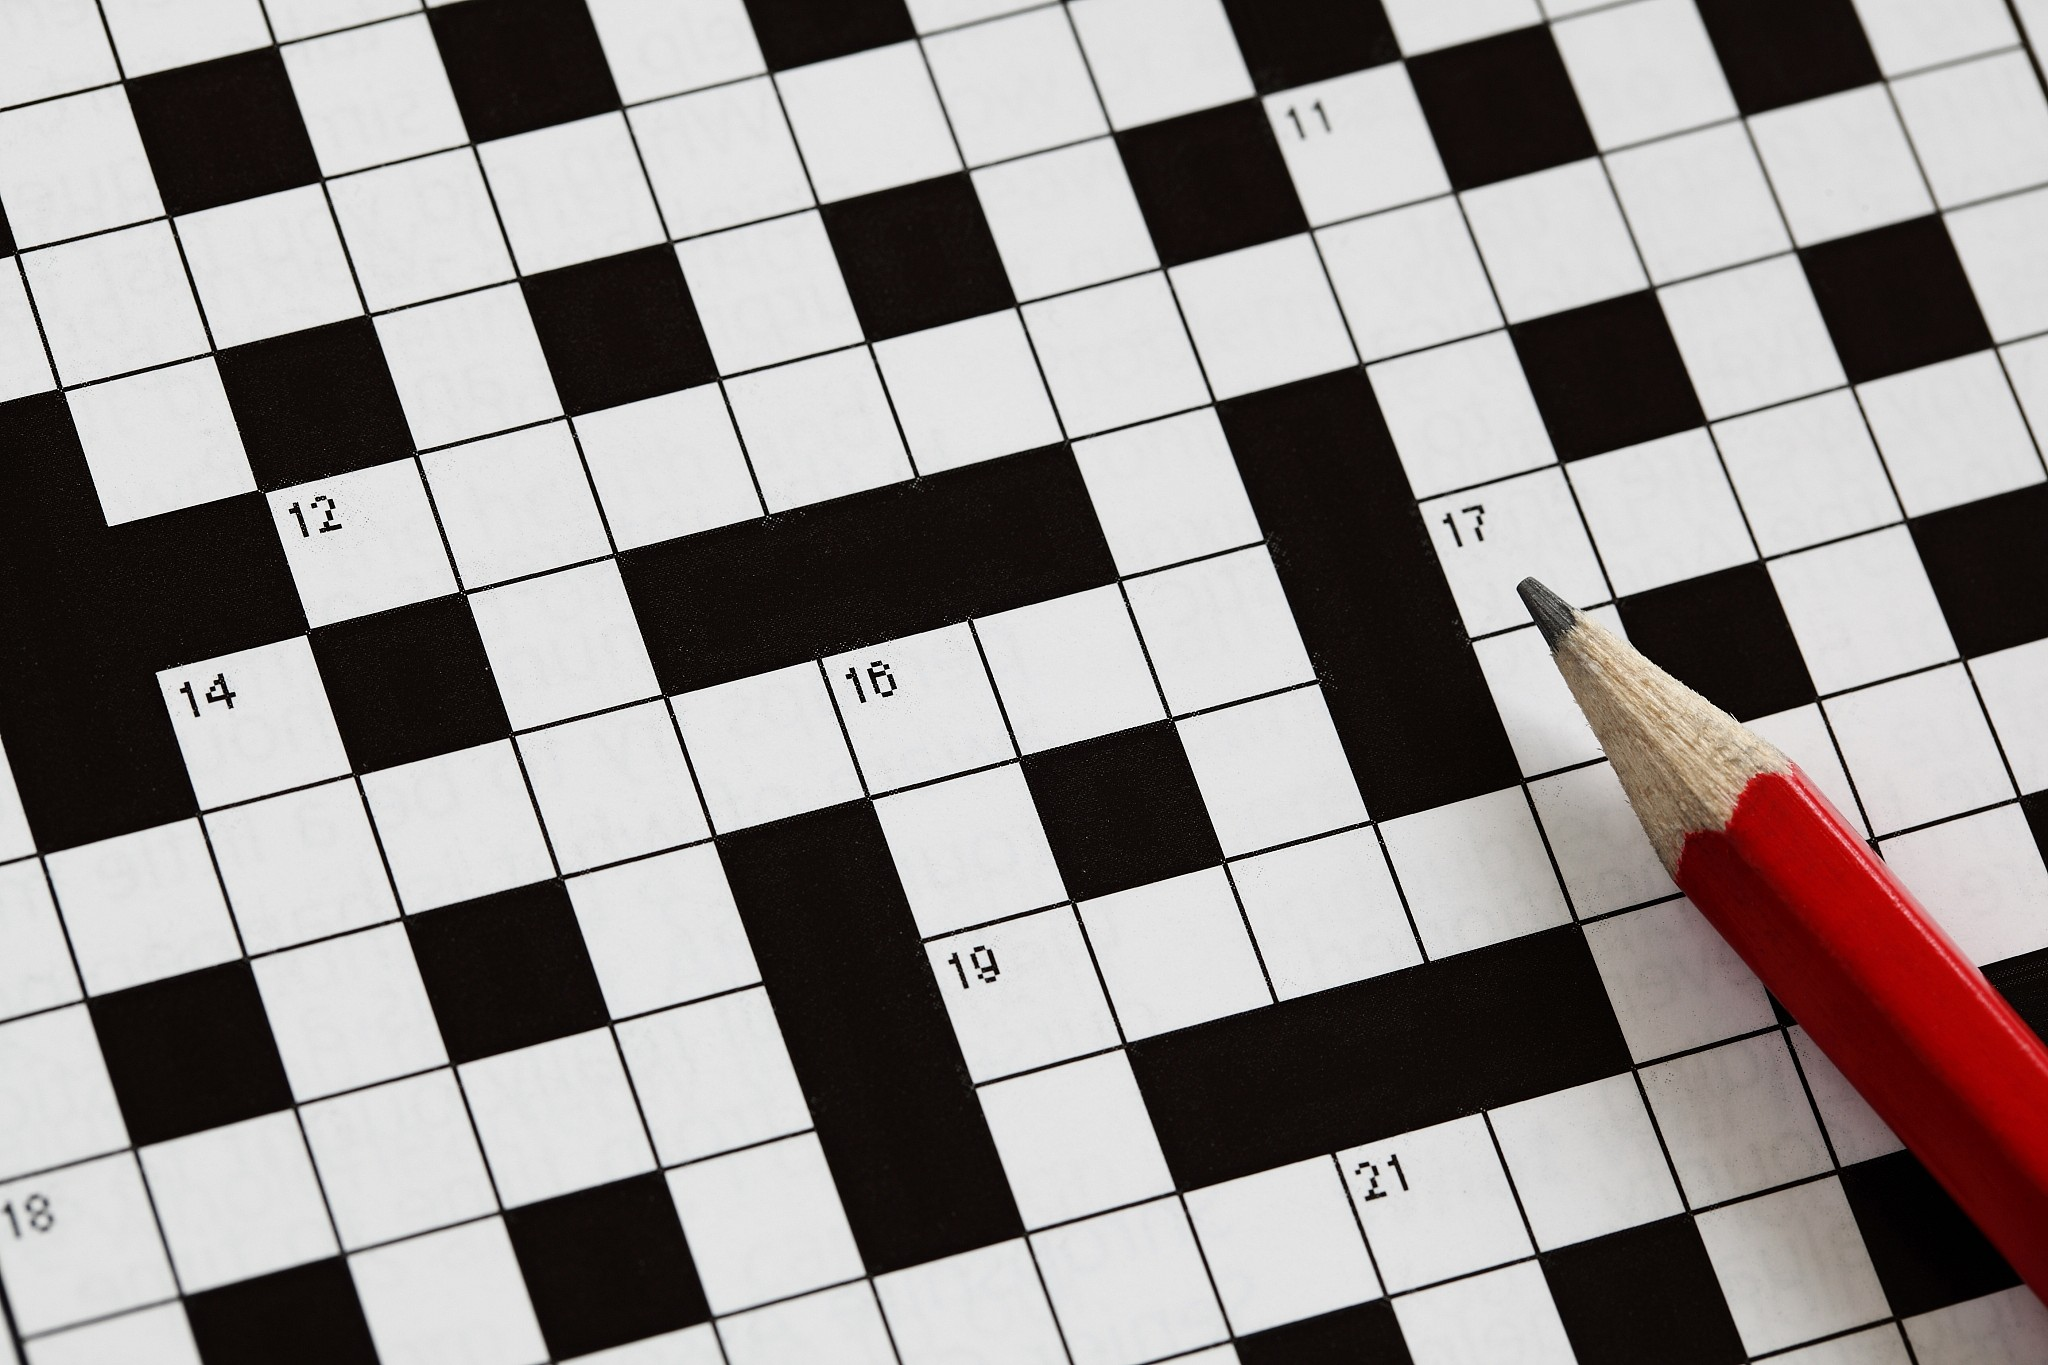 Brazilian newspaper 'sorry' for pro-Palestinian crossword clue | The